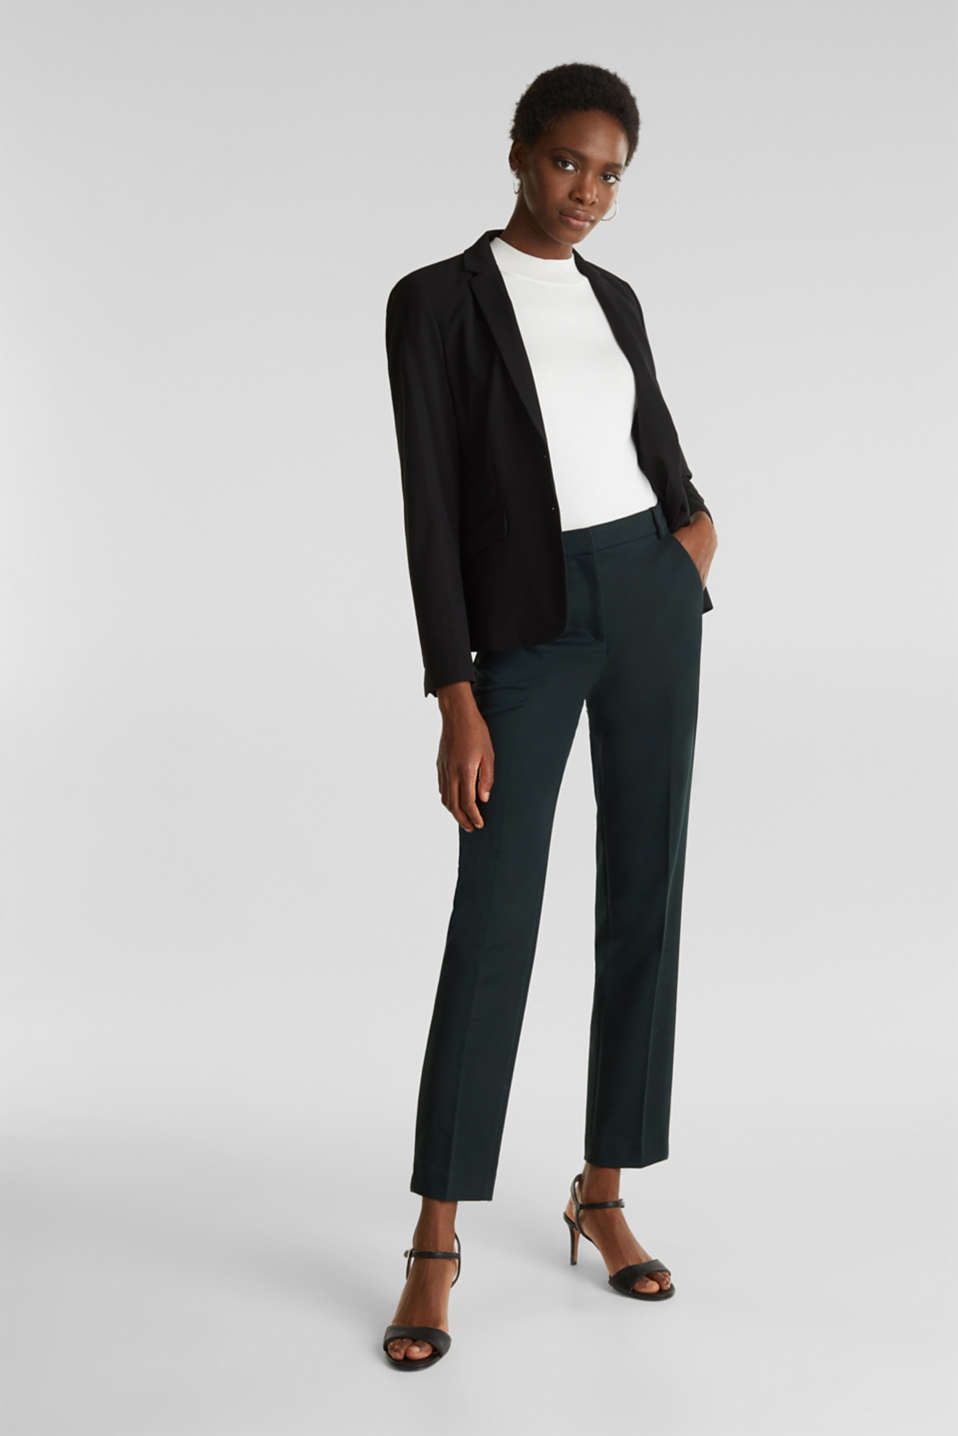 Stretch trousers with pressed pleats, DARK TEAL GREEN, detail image number 1